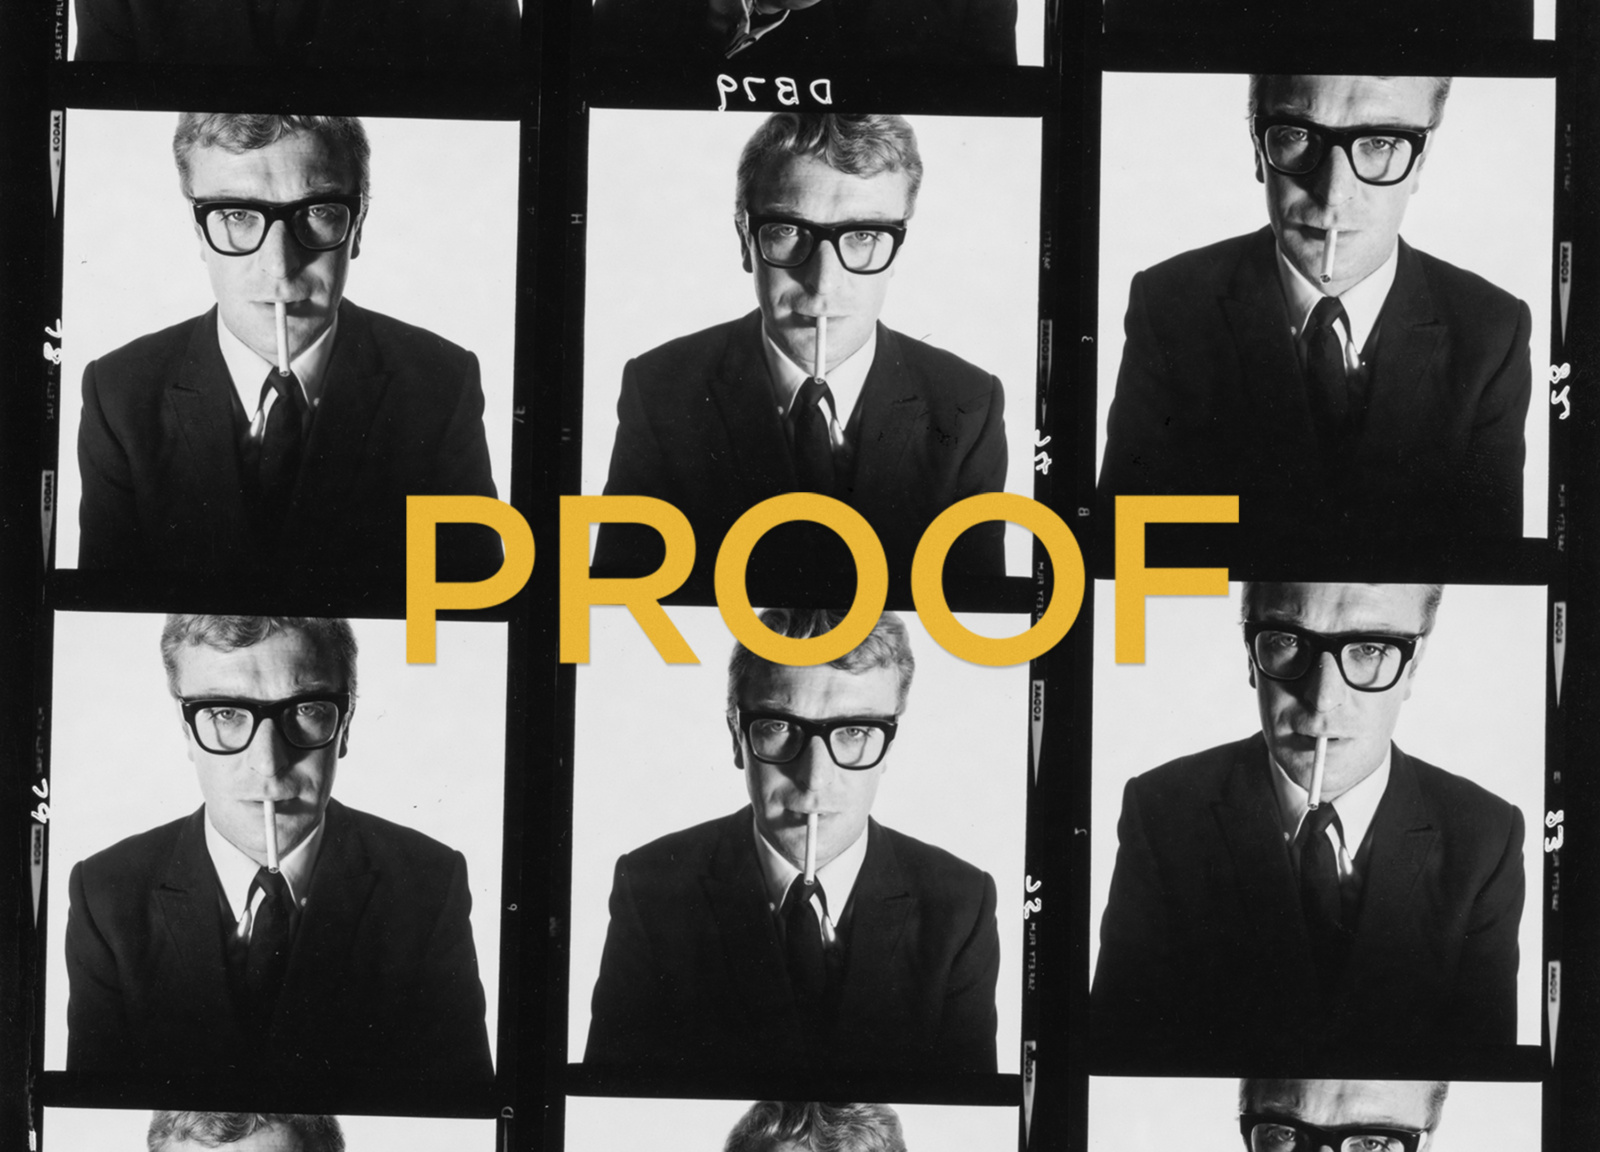 Detailed view of the PROOF book cover design, which features a Michael Caine contact sheet